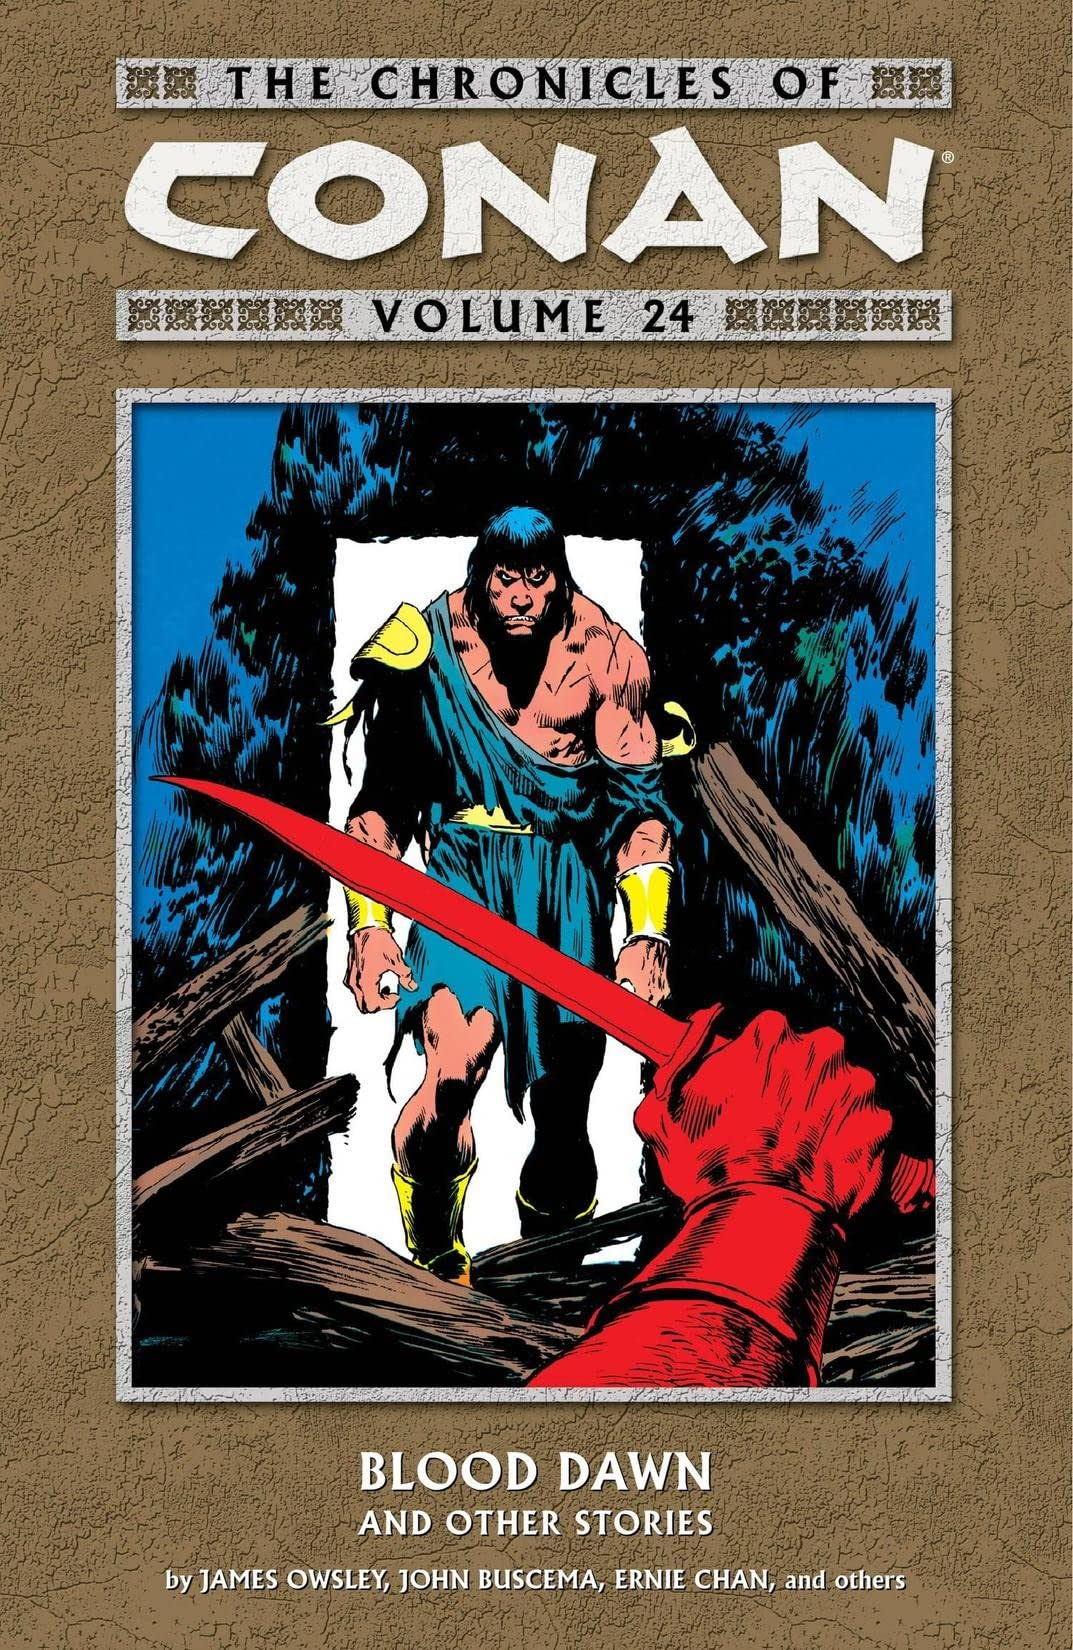 Chronicles of Conan Vol. 24: Blood Dawn and Other Stories